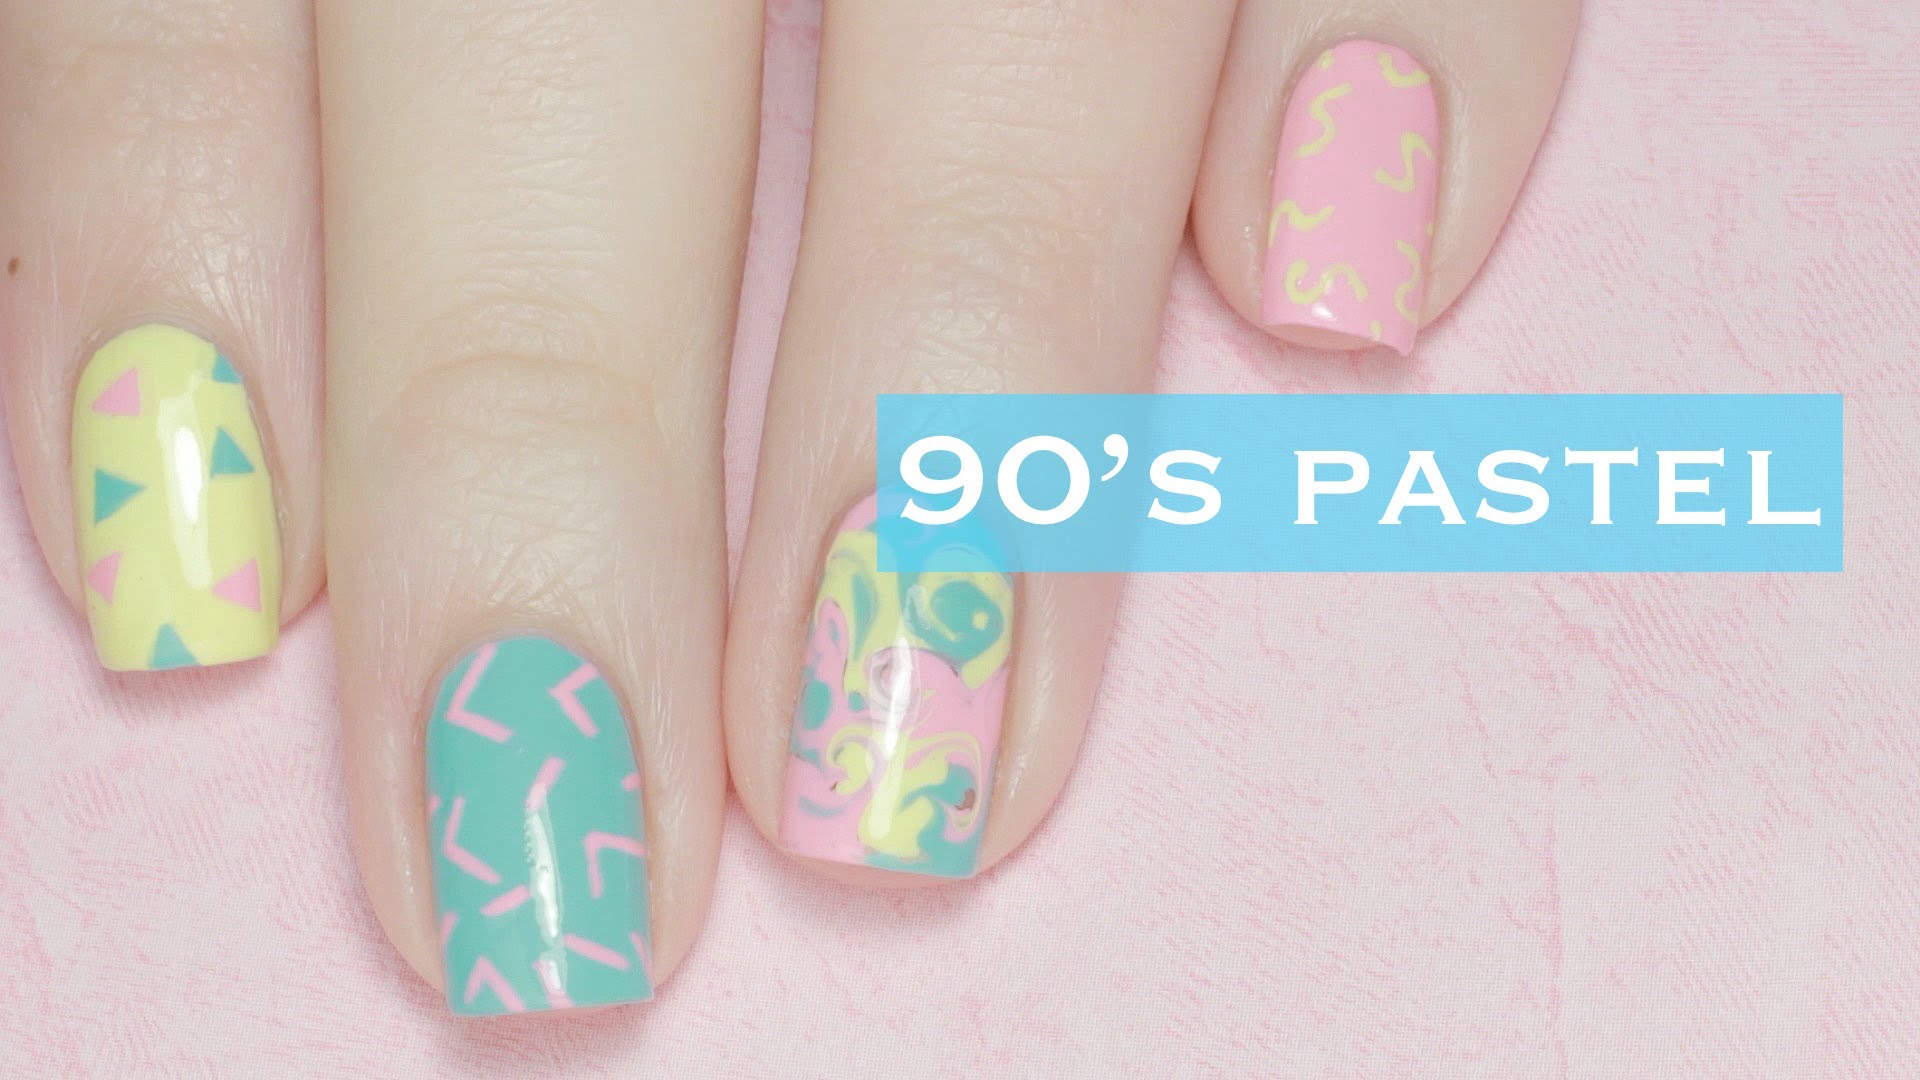 it's a picture of casual nail art designs with pastel vibe